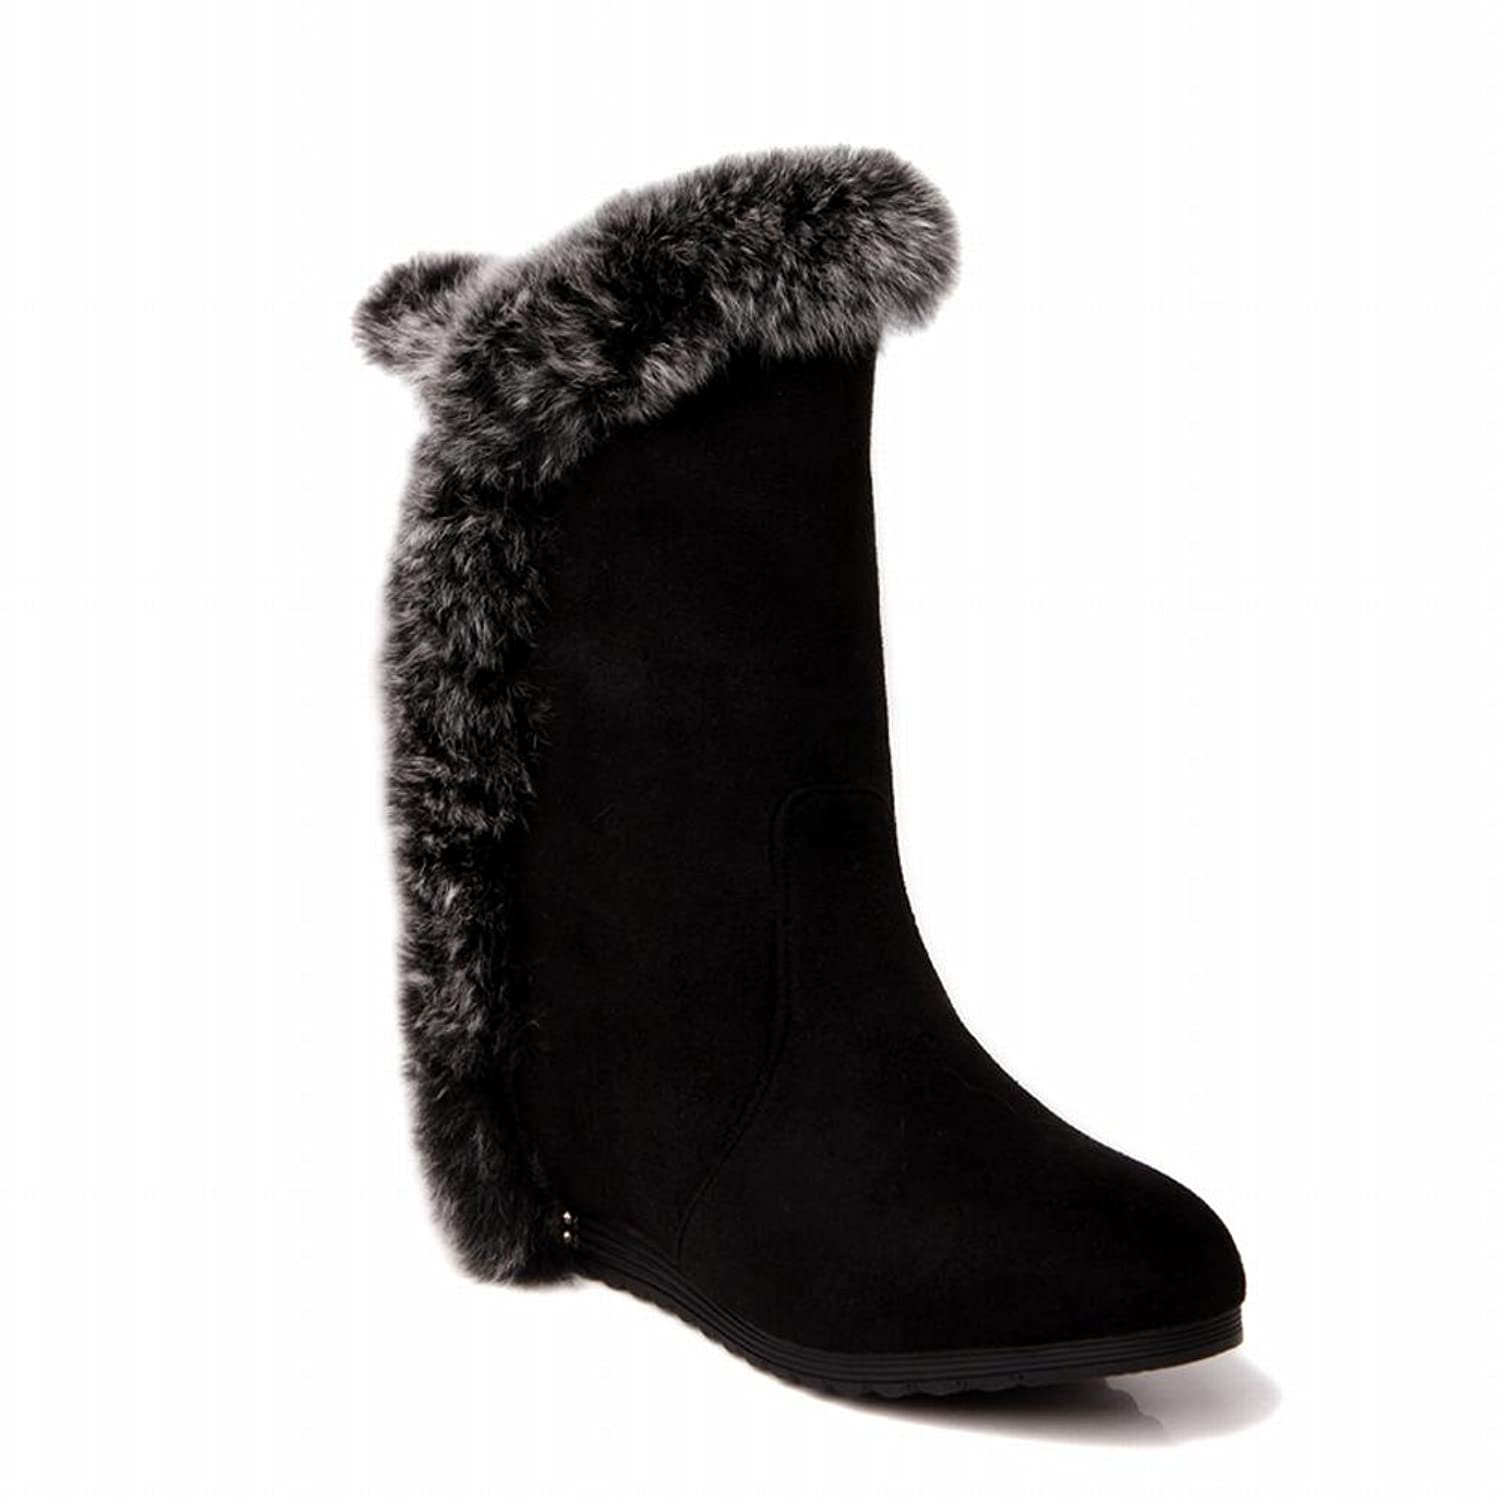 free shipping Charm Foot Women's Fashion Nubuck Thick Velvet Lined Low-heel High-top Winter Cold Weather Snow Boots